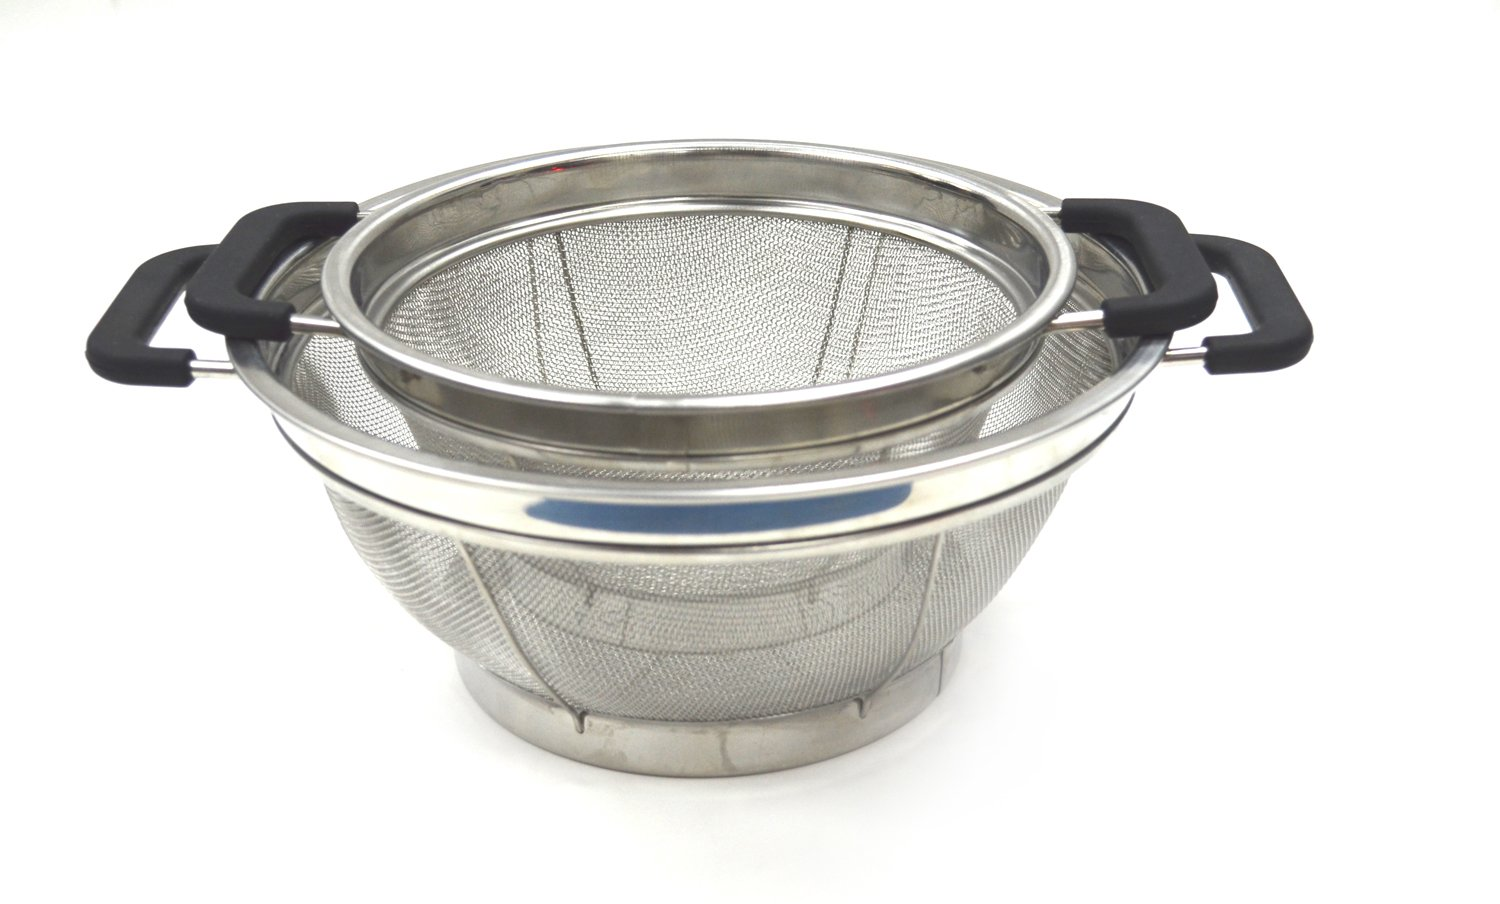 SAMMART Set of 2 Stainless Steel Mesh Colander with Black Silicone Handle - Strainer for Pasta, Noodle and Fruits